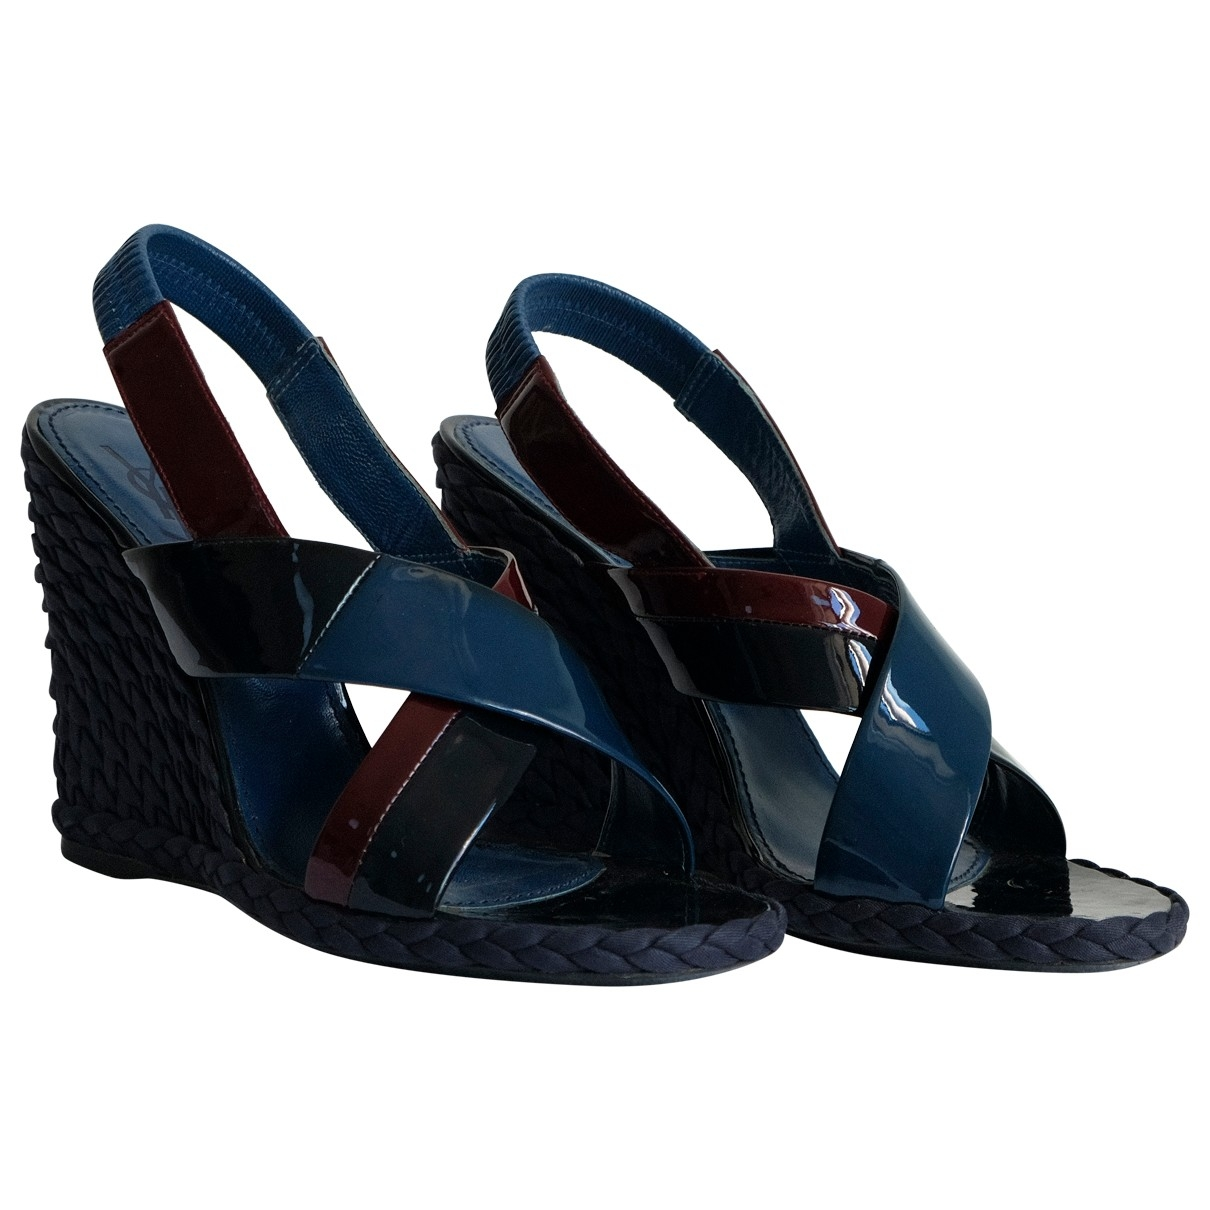 Yves Saint Laurent \N Navy Patent leather Sandals for Women 37 EU